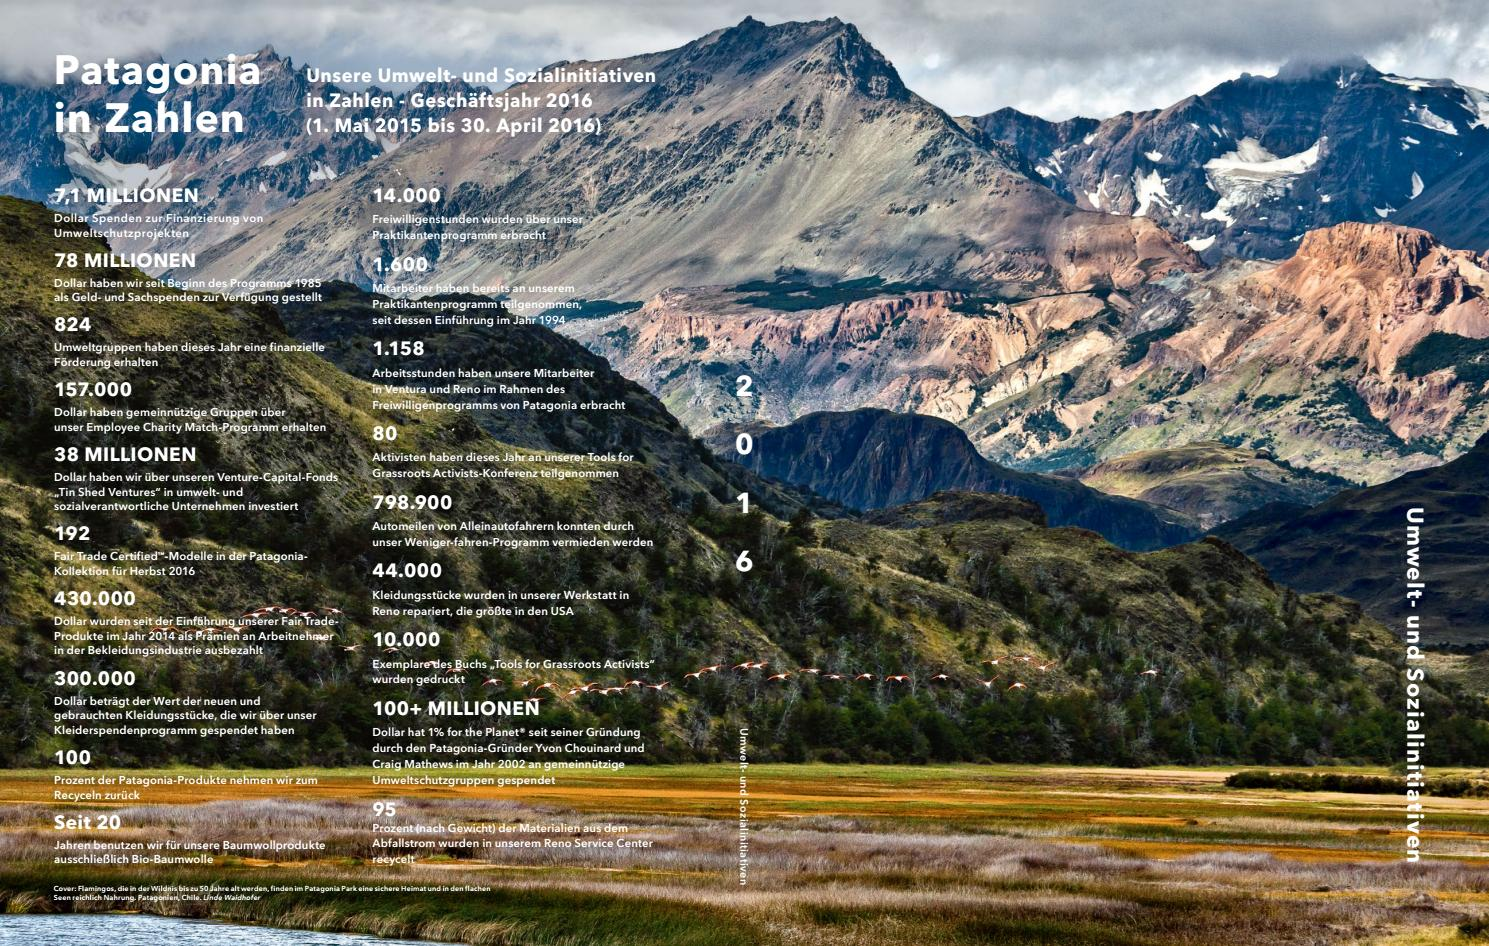 Patagonia Umwelt Und Sozialinitiativen 2016 By Patagonia The